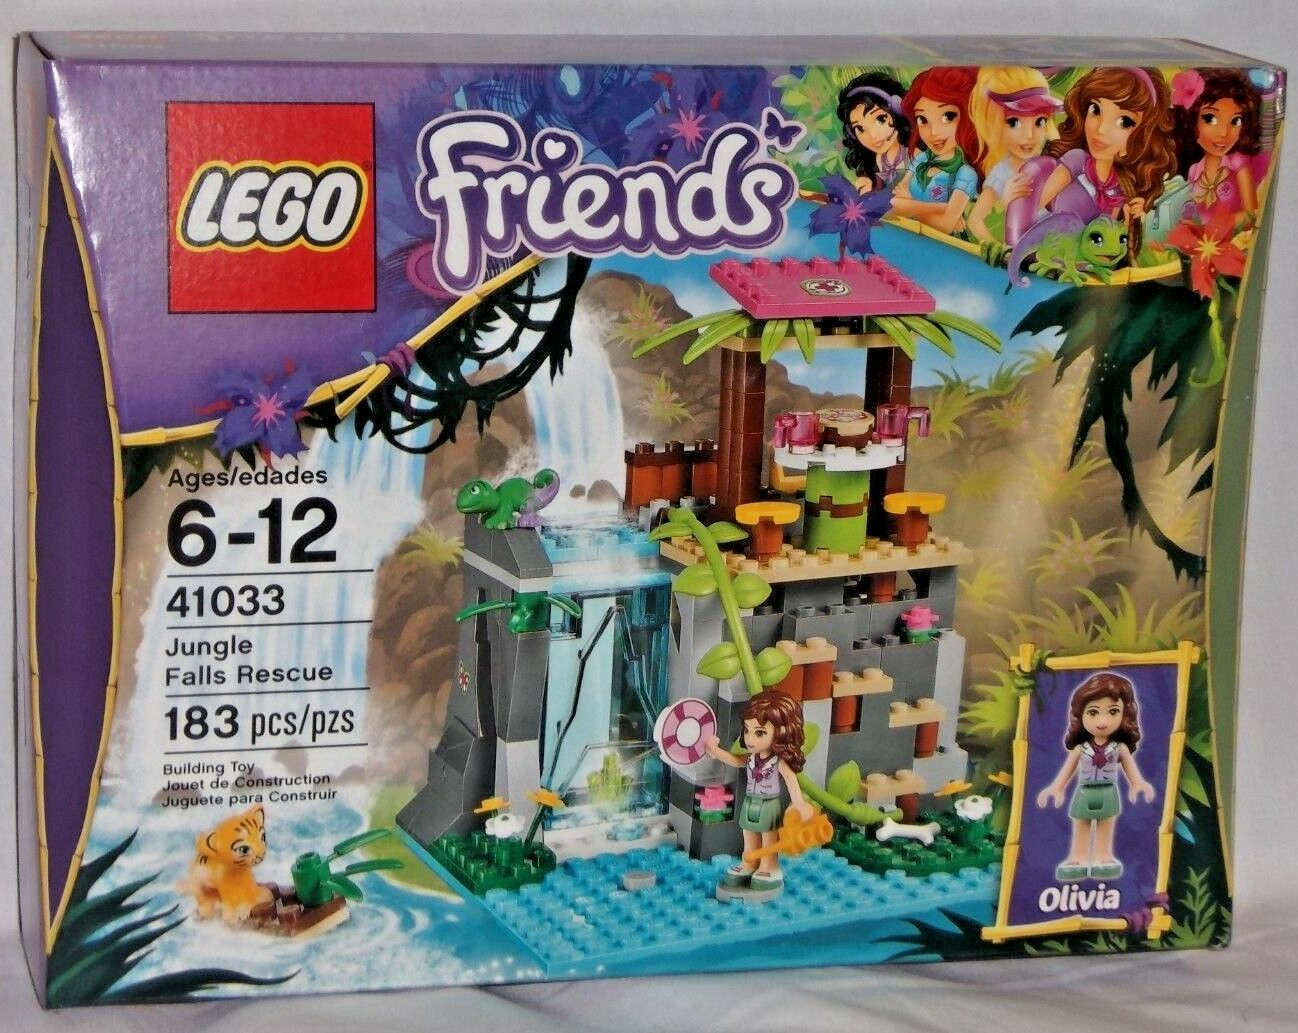 SEALED 41033 LEGO Friends JUNGLE FALLS RESCUE Olivia Brunette Tiger 183 pcs set